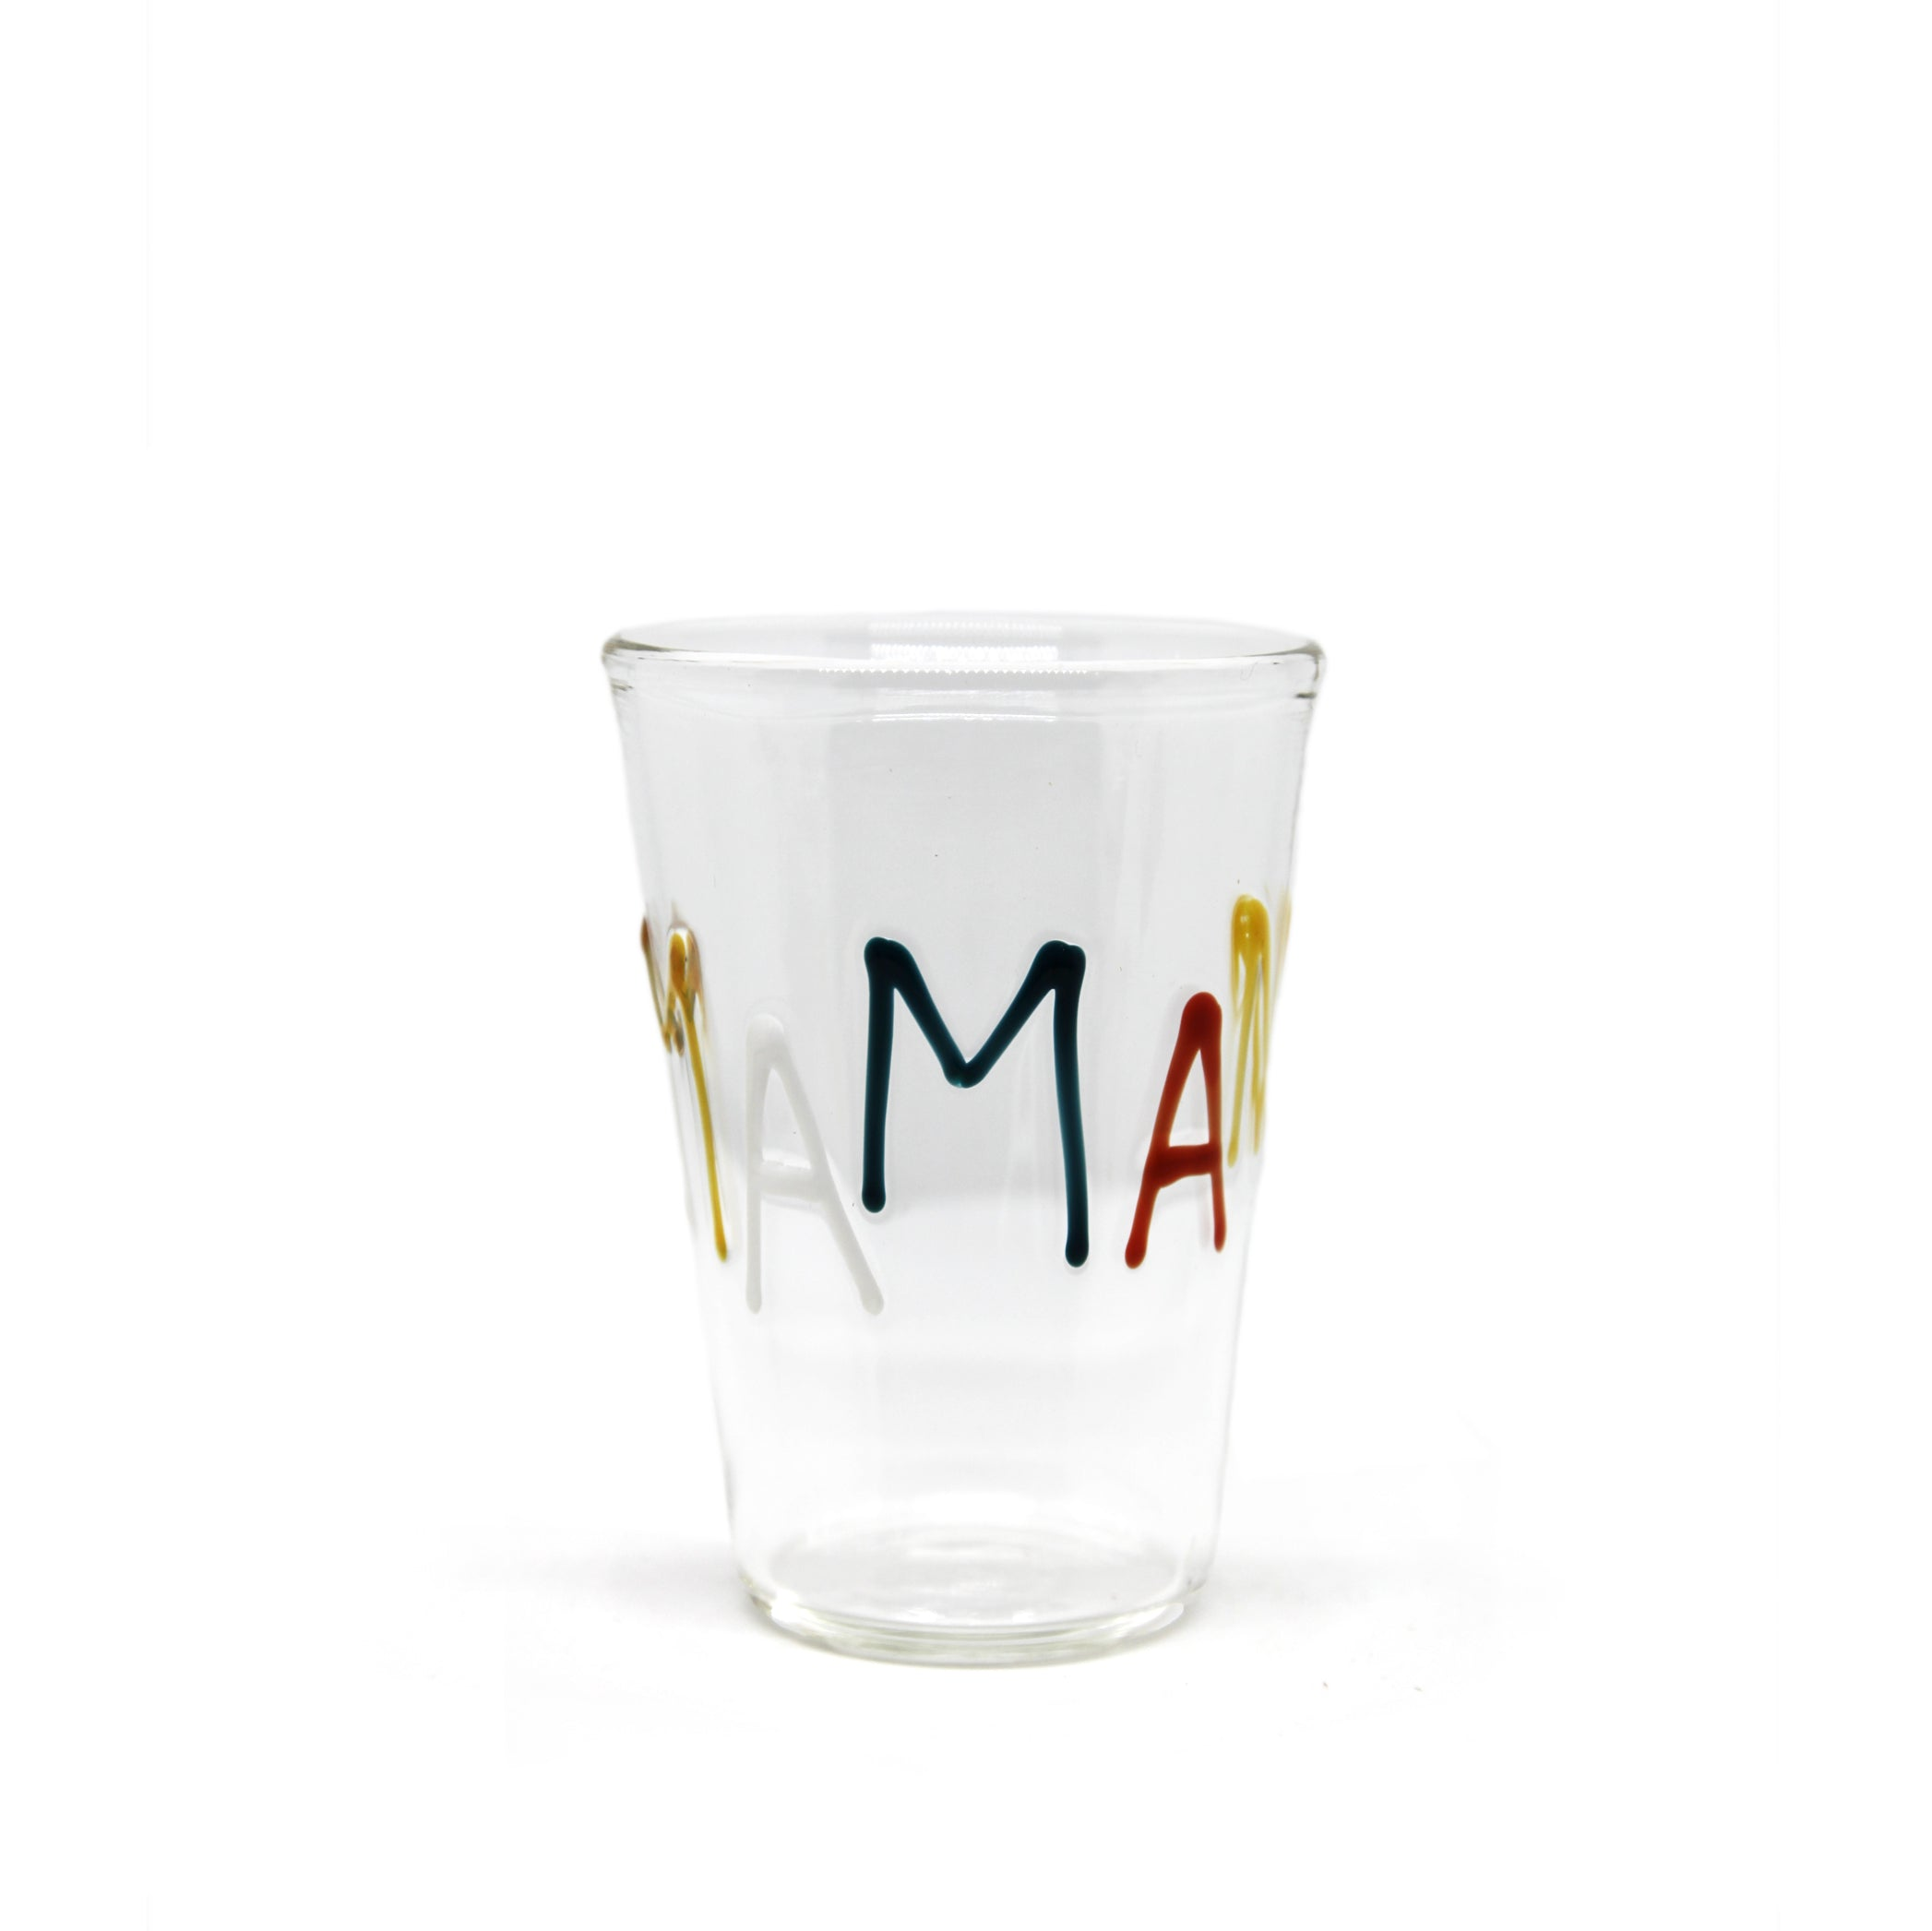 Handblown Glass Maman Tumbler